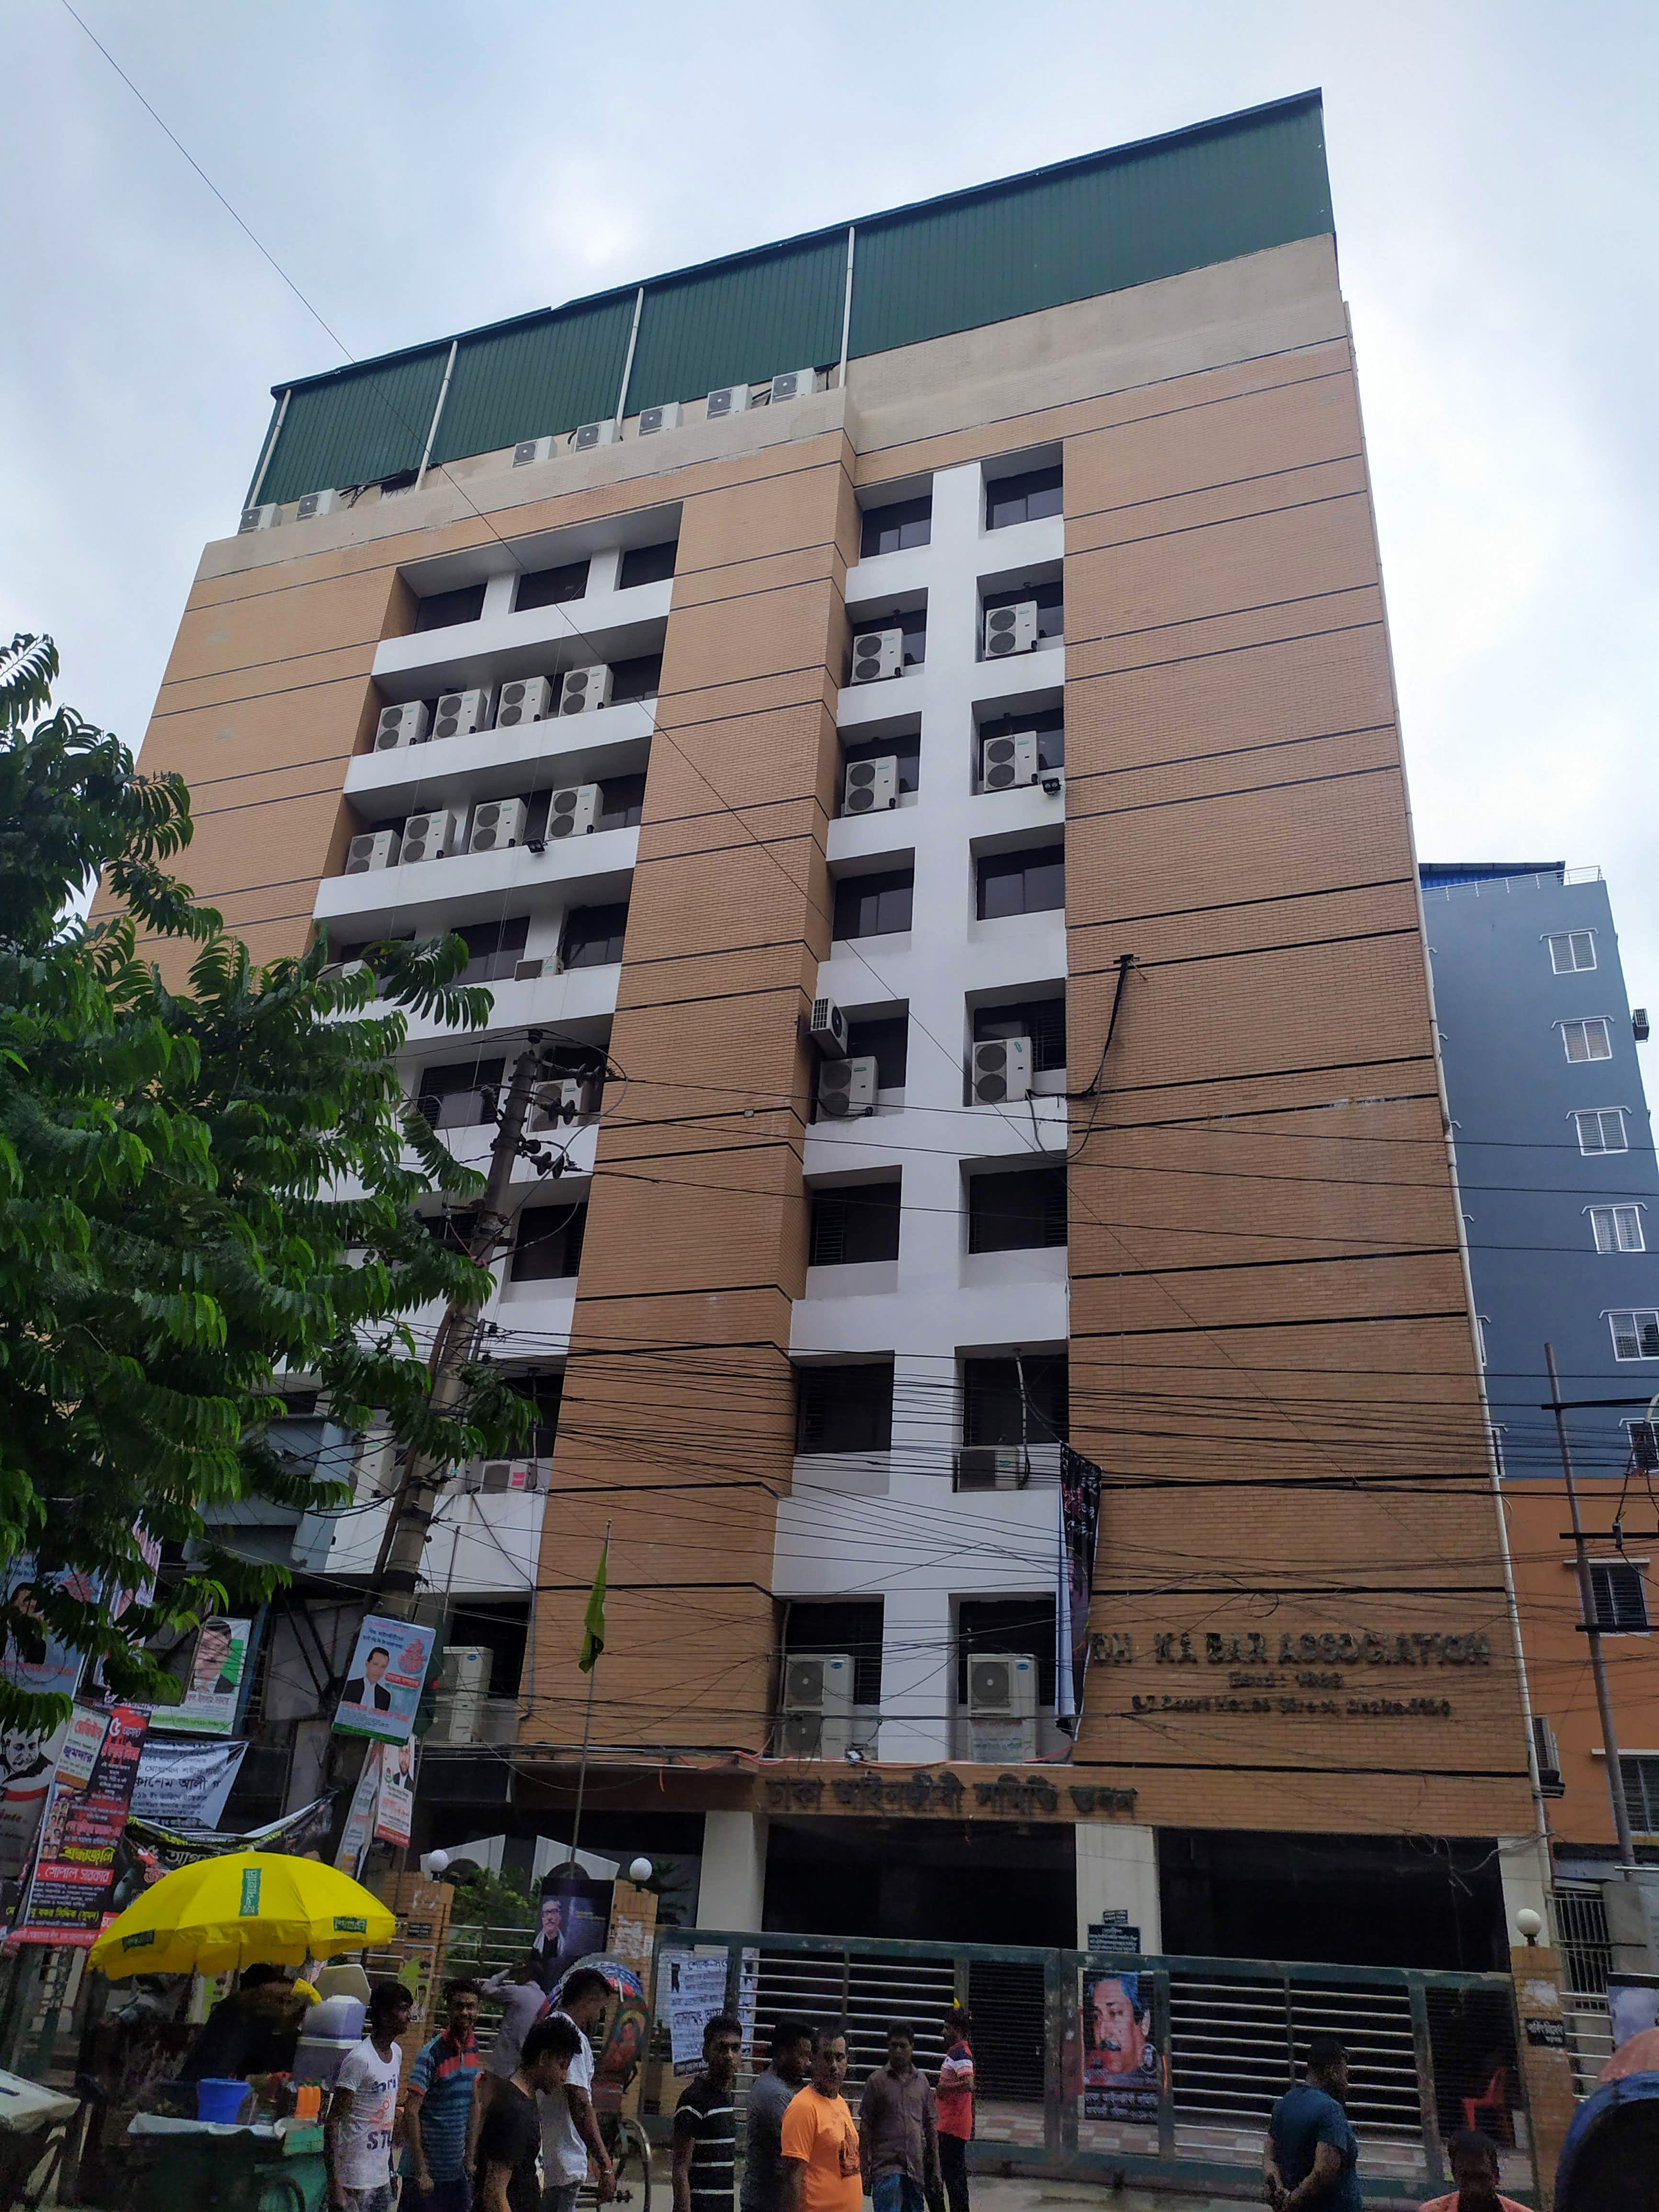 The building housing the Dhaka Bar Association